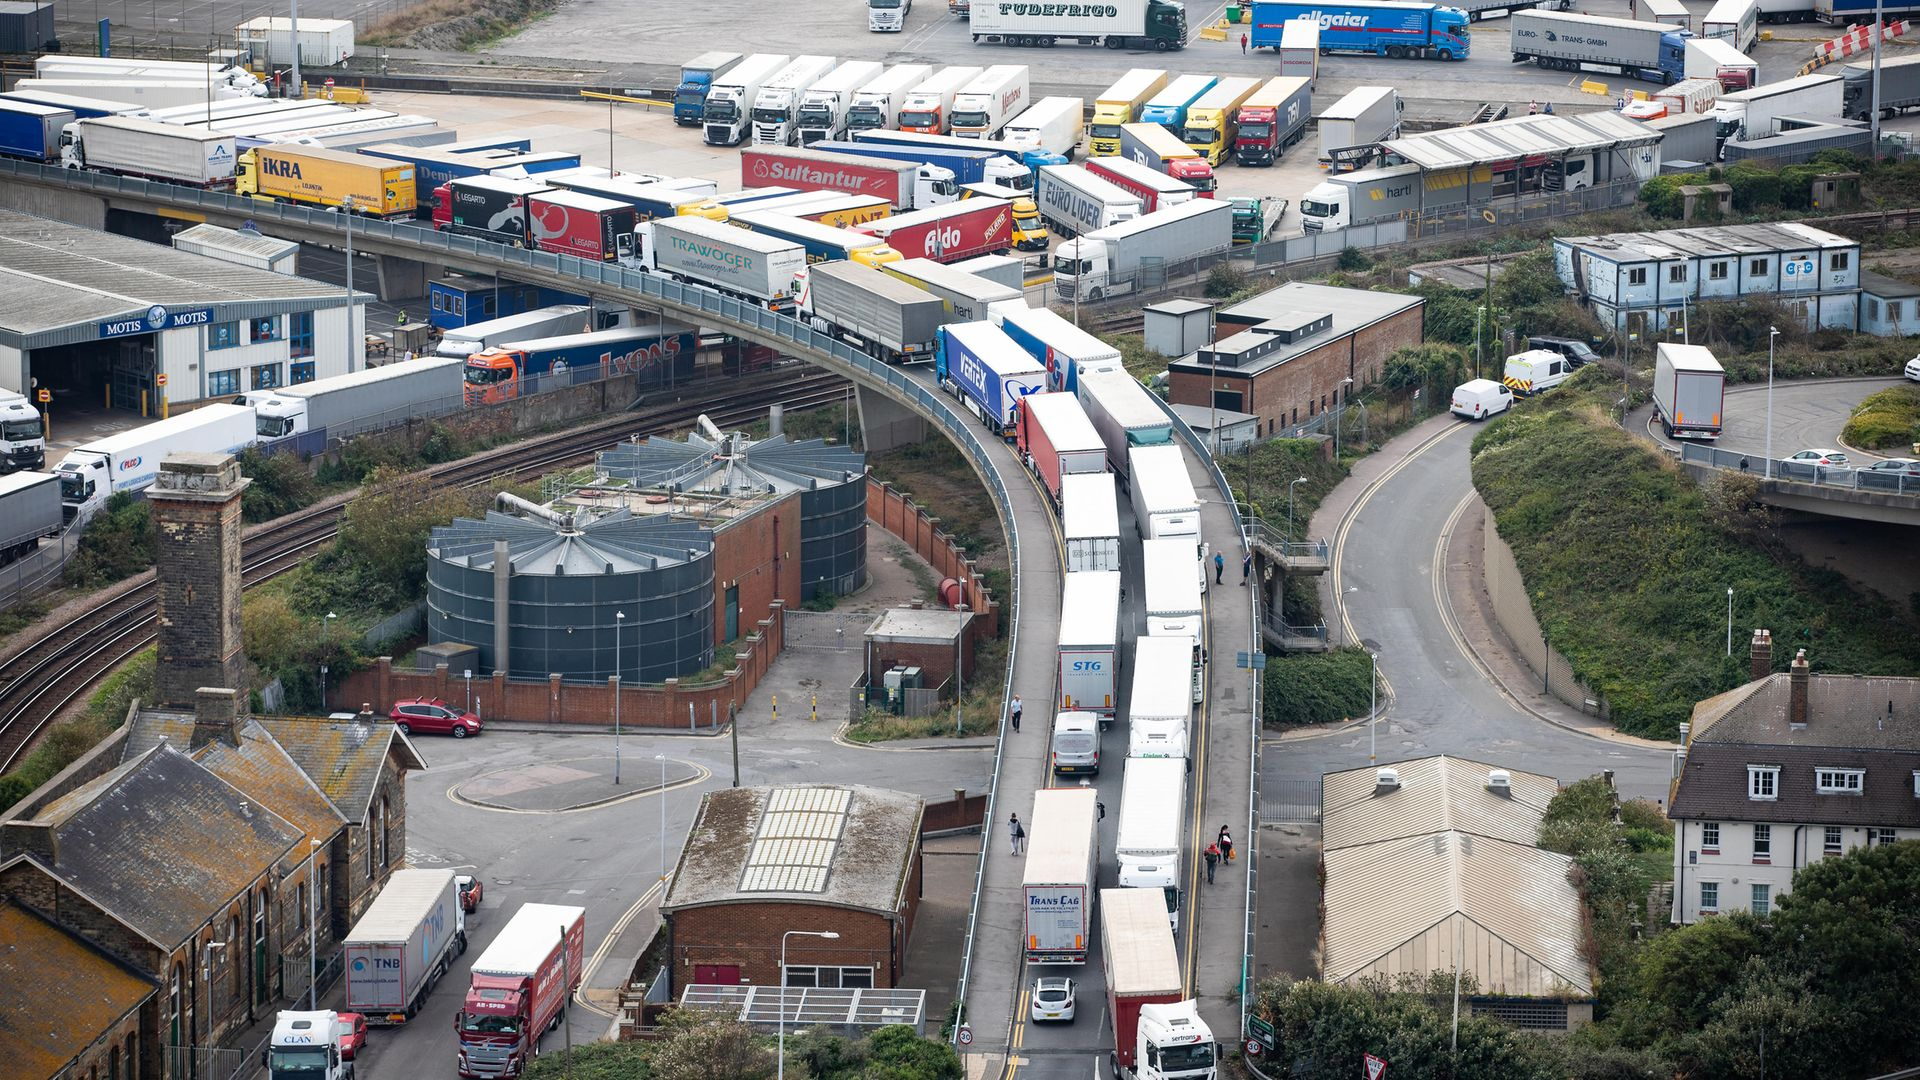 Lorry drivers will need a special permit to enter Kent from neighbouring counties after Brexit - Credit: PA